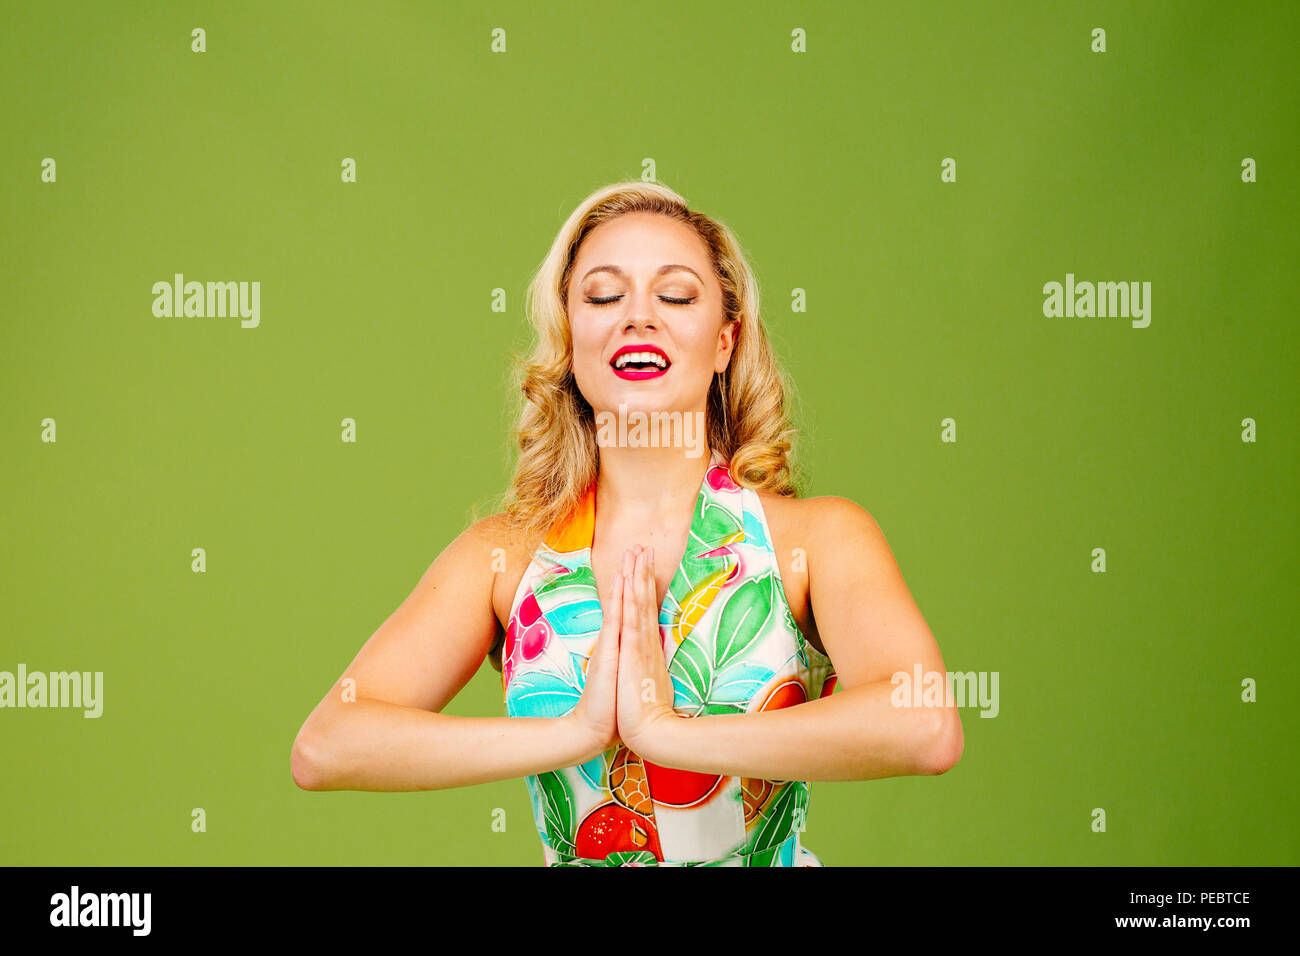 Beautiful woman with hands together in prayer and mouth open, isolated on green studio background - Stock Image